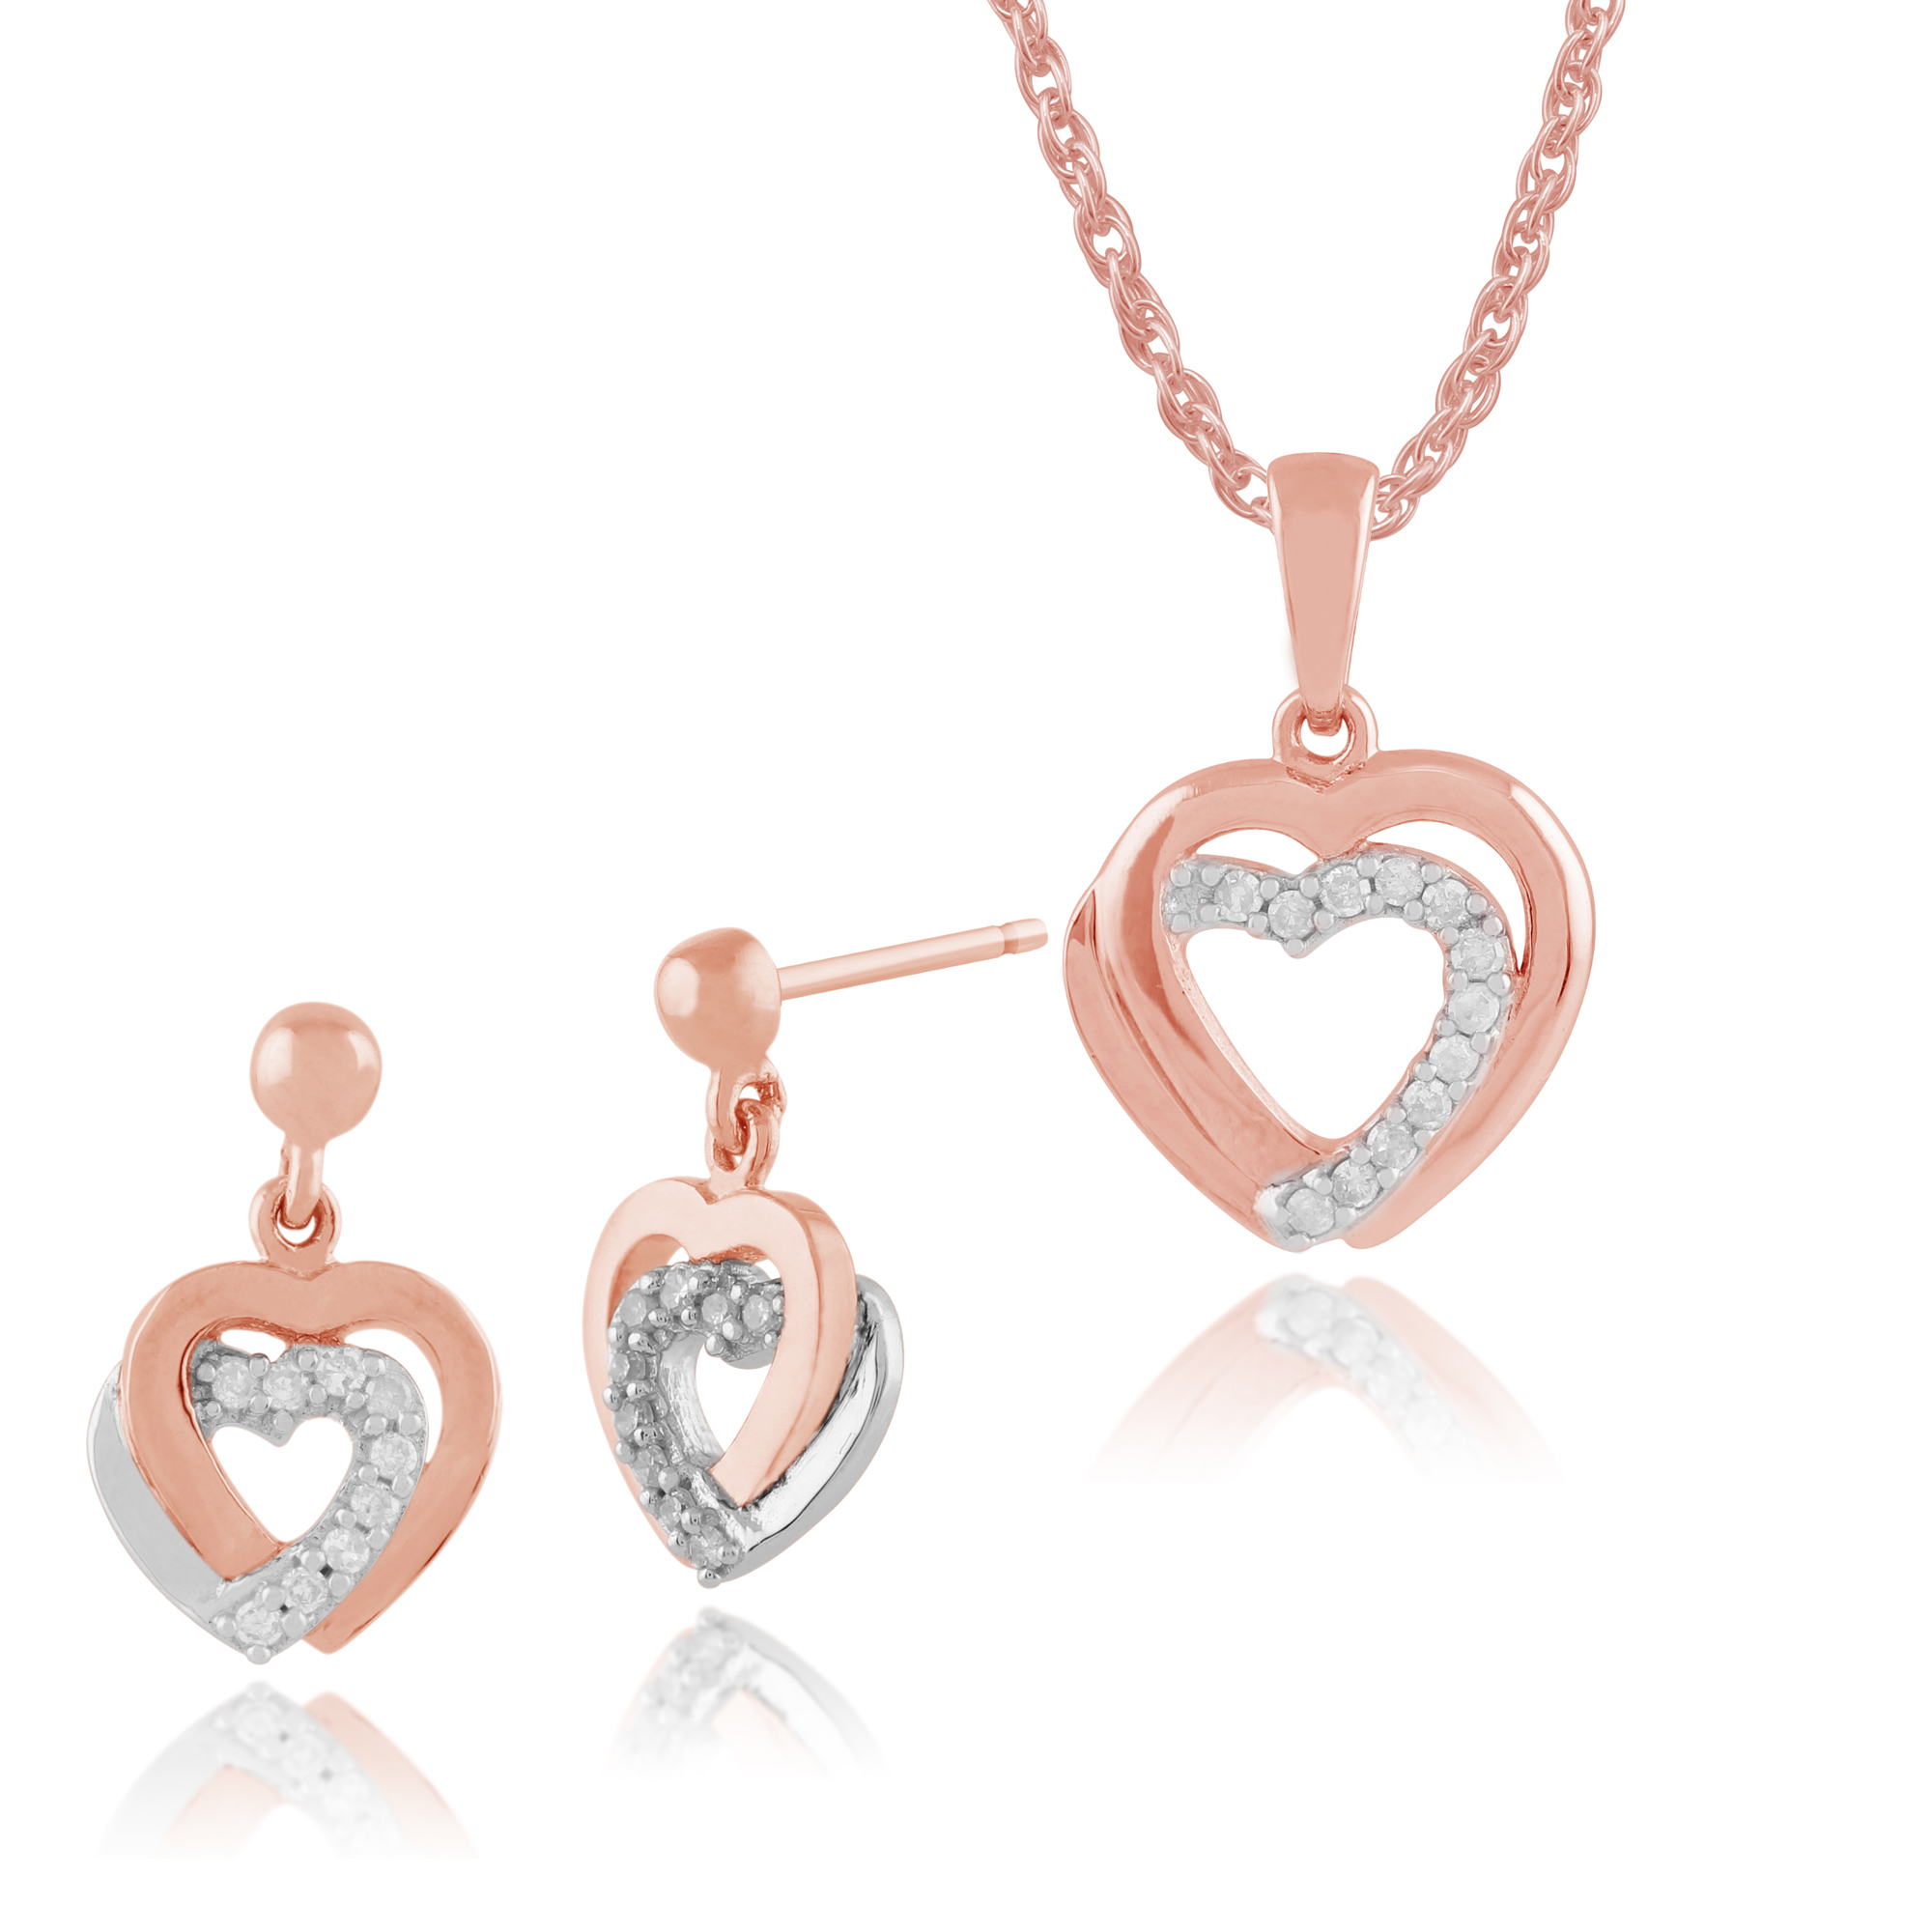 Gemondo 9ct Rose Gold Diamond Hearts Drop Earrings & 45cm Necklace Set